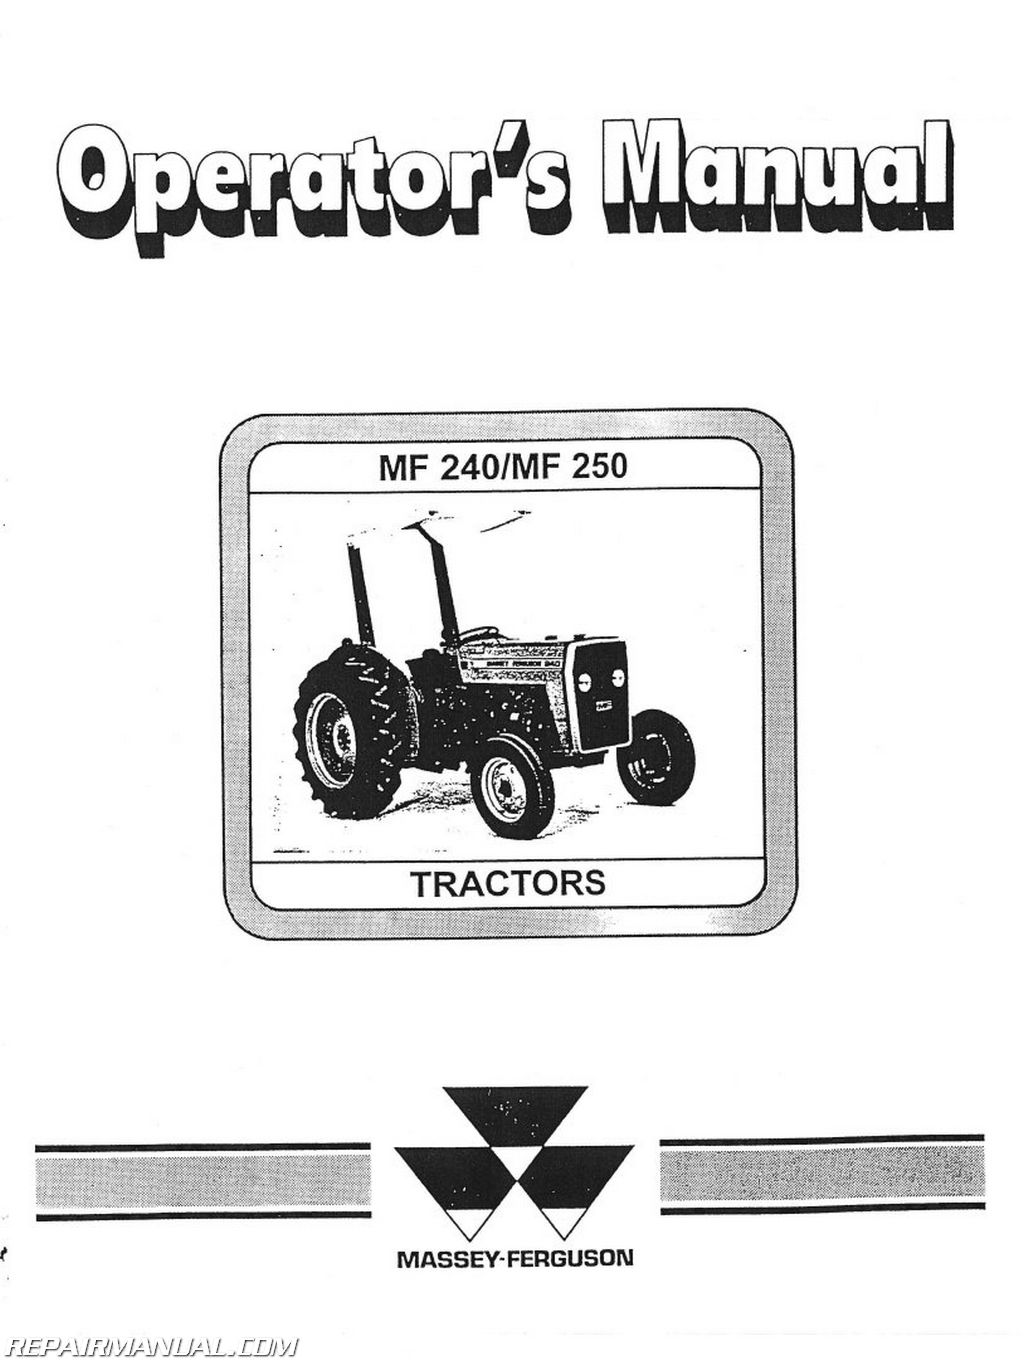 massey ferguson 240 parts diagram warn winch 2500 mf240 and 250 operators manual